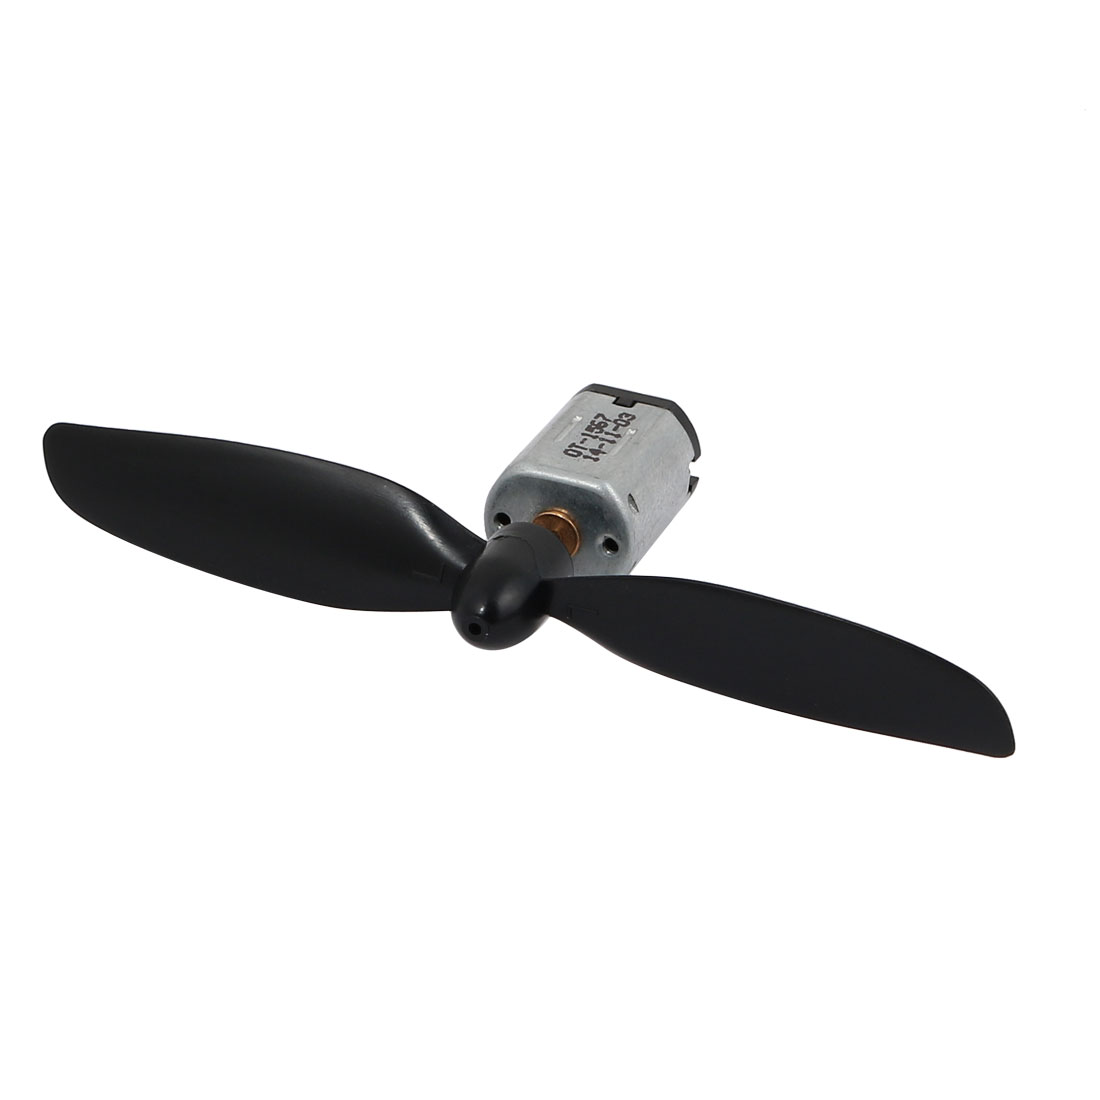 DC 3V 20000RPM N20 High Speed Strong Magnetic Motor w Helicopter CCW Propeller